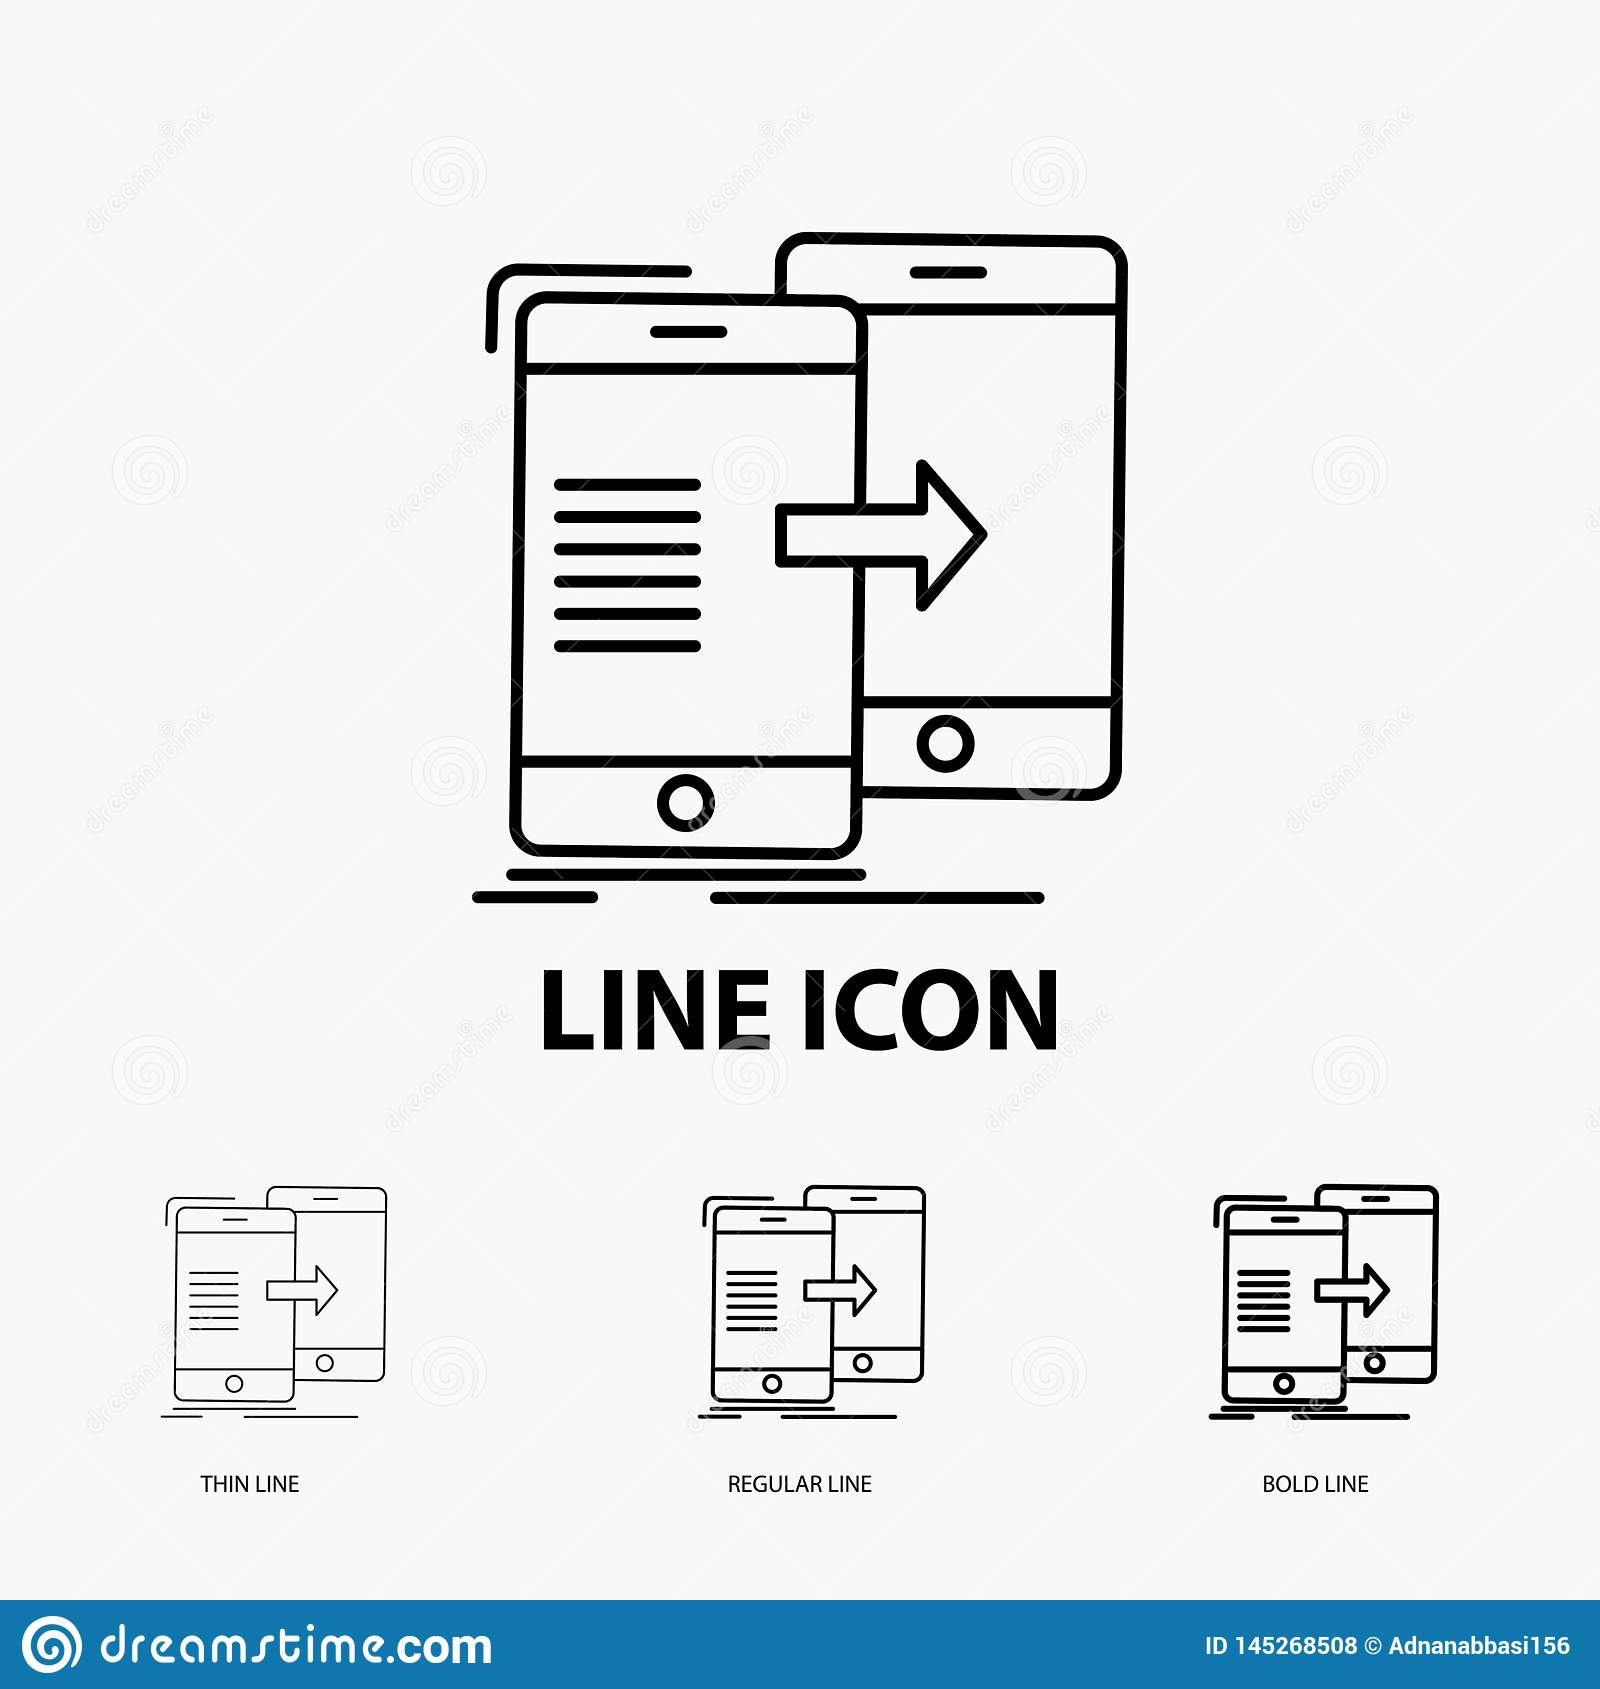 data, Sharing, sync, synchronization, syncing Icon in Thin, Regular and Bold Line Style. Vector illustration